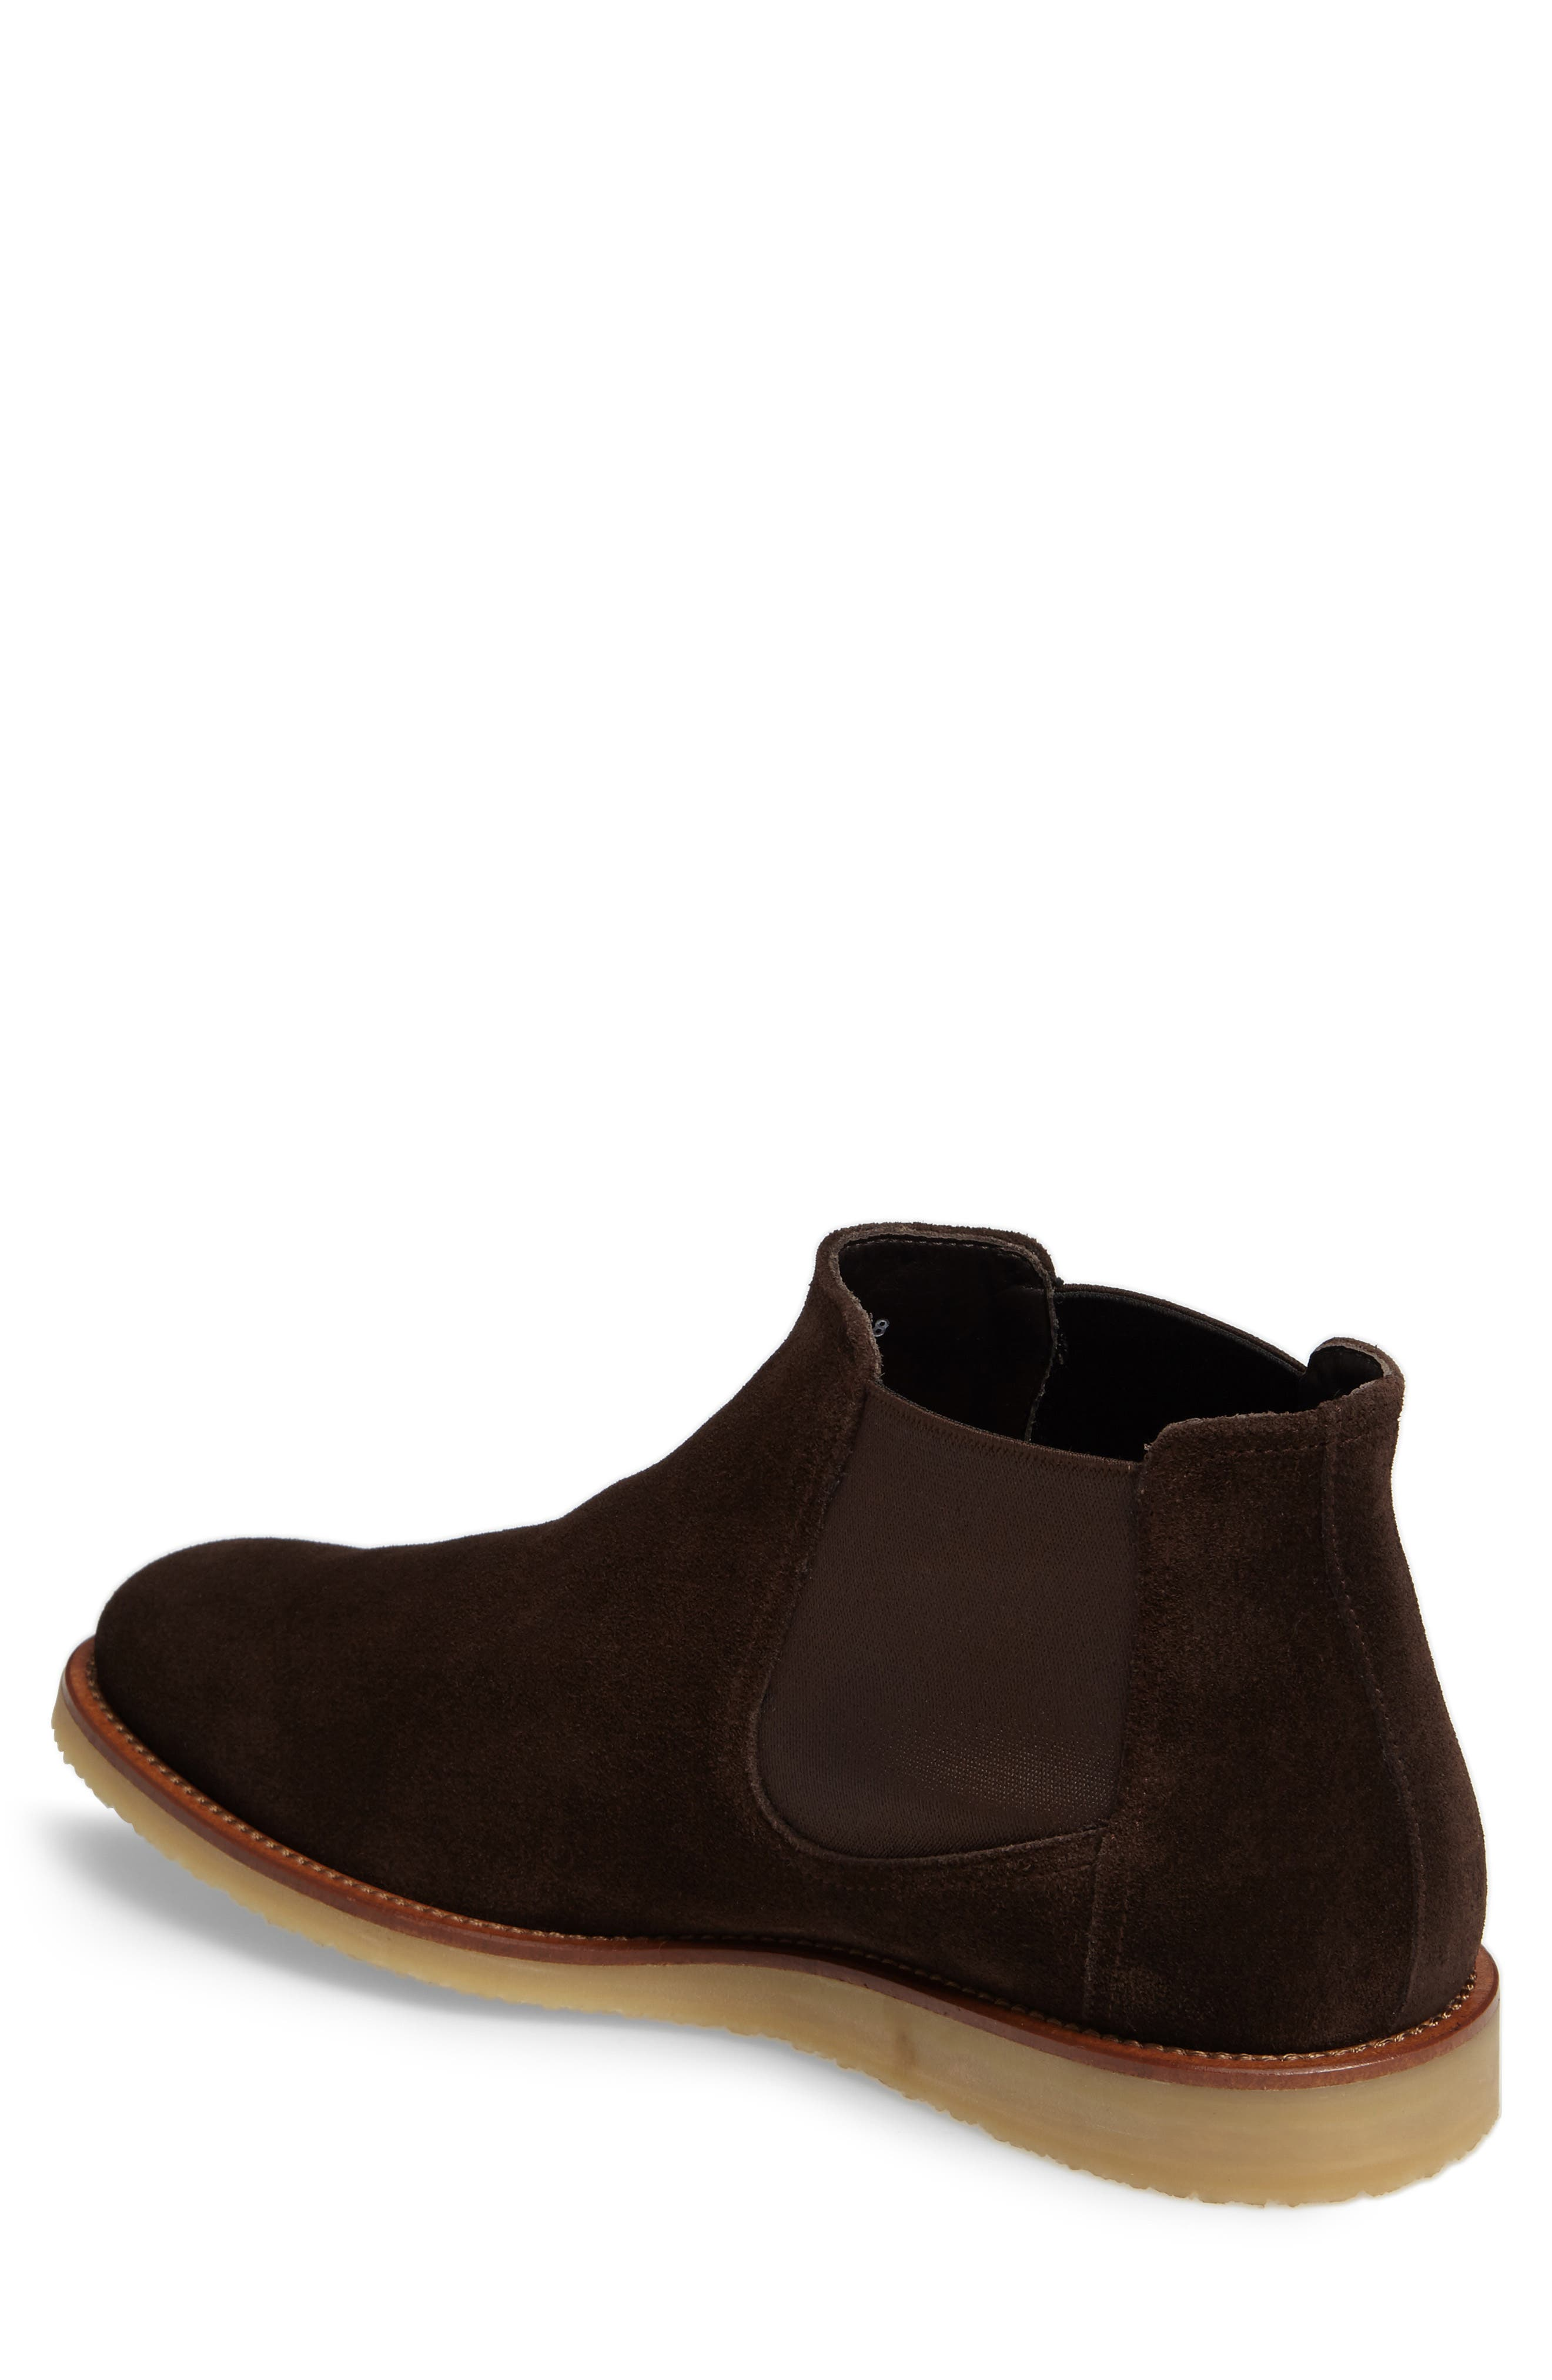 March Chelsea Boot,                             Alternate thumbnail 5, color,